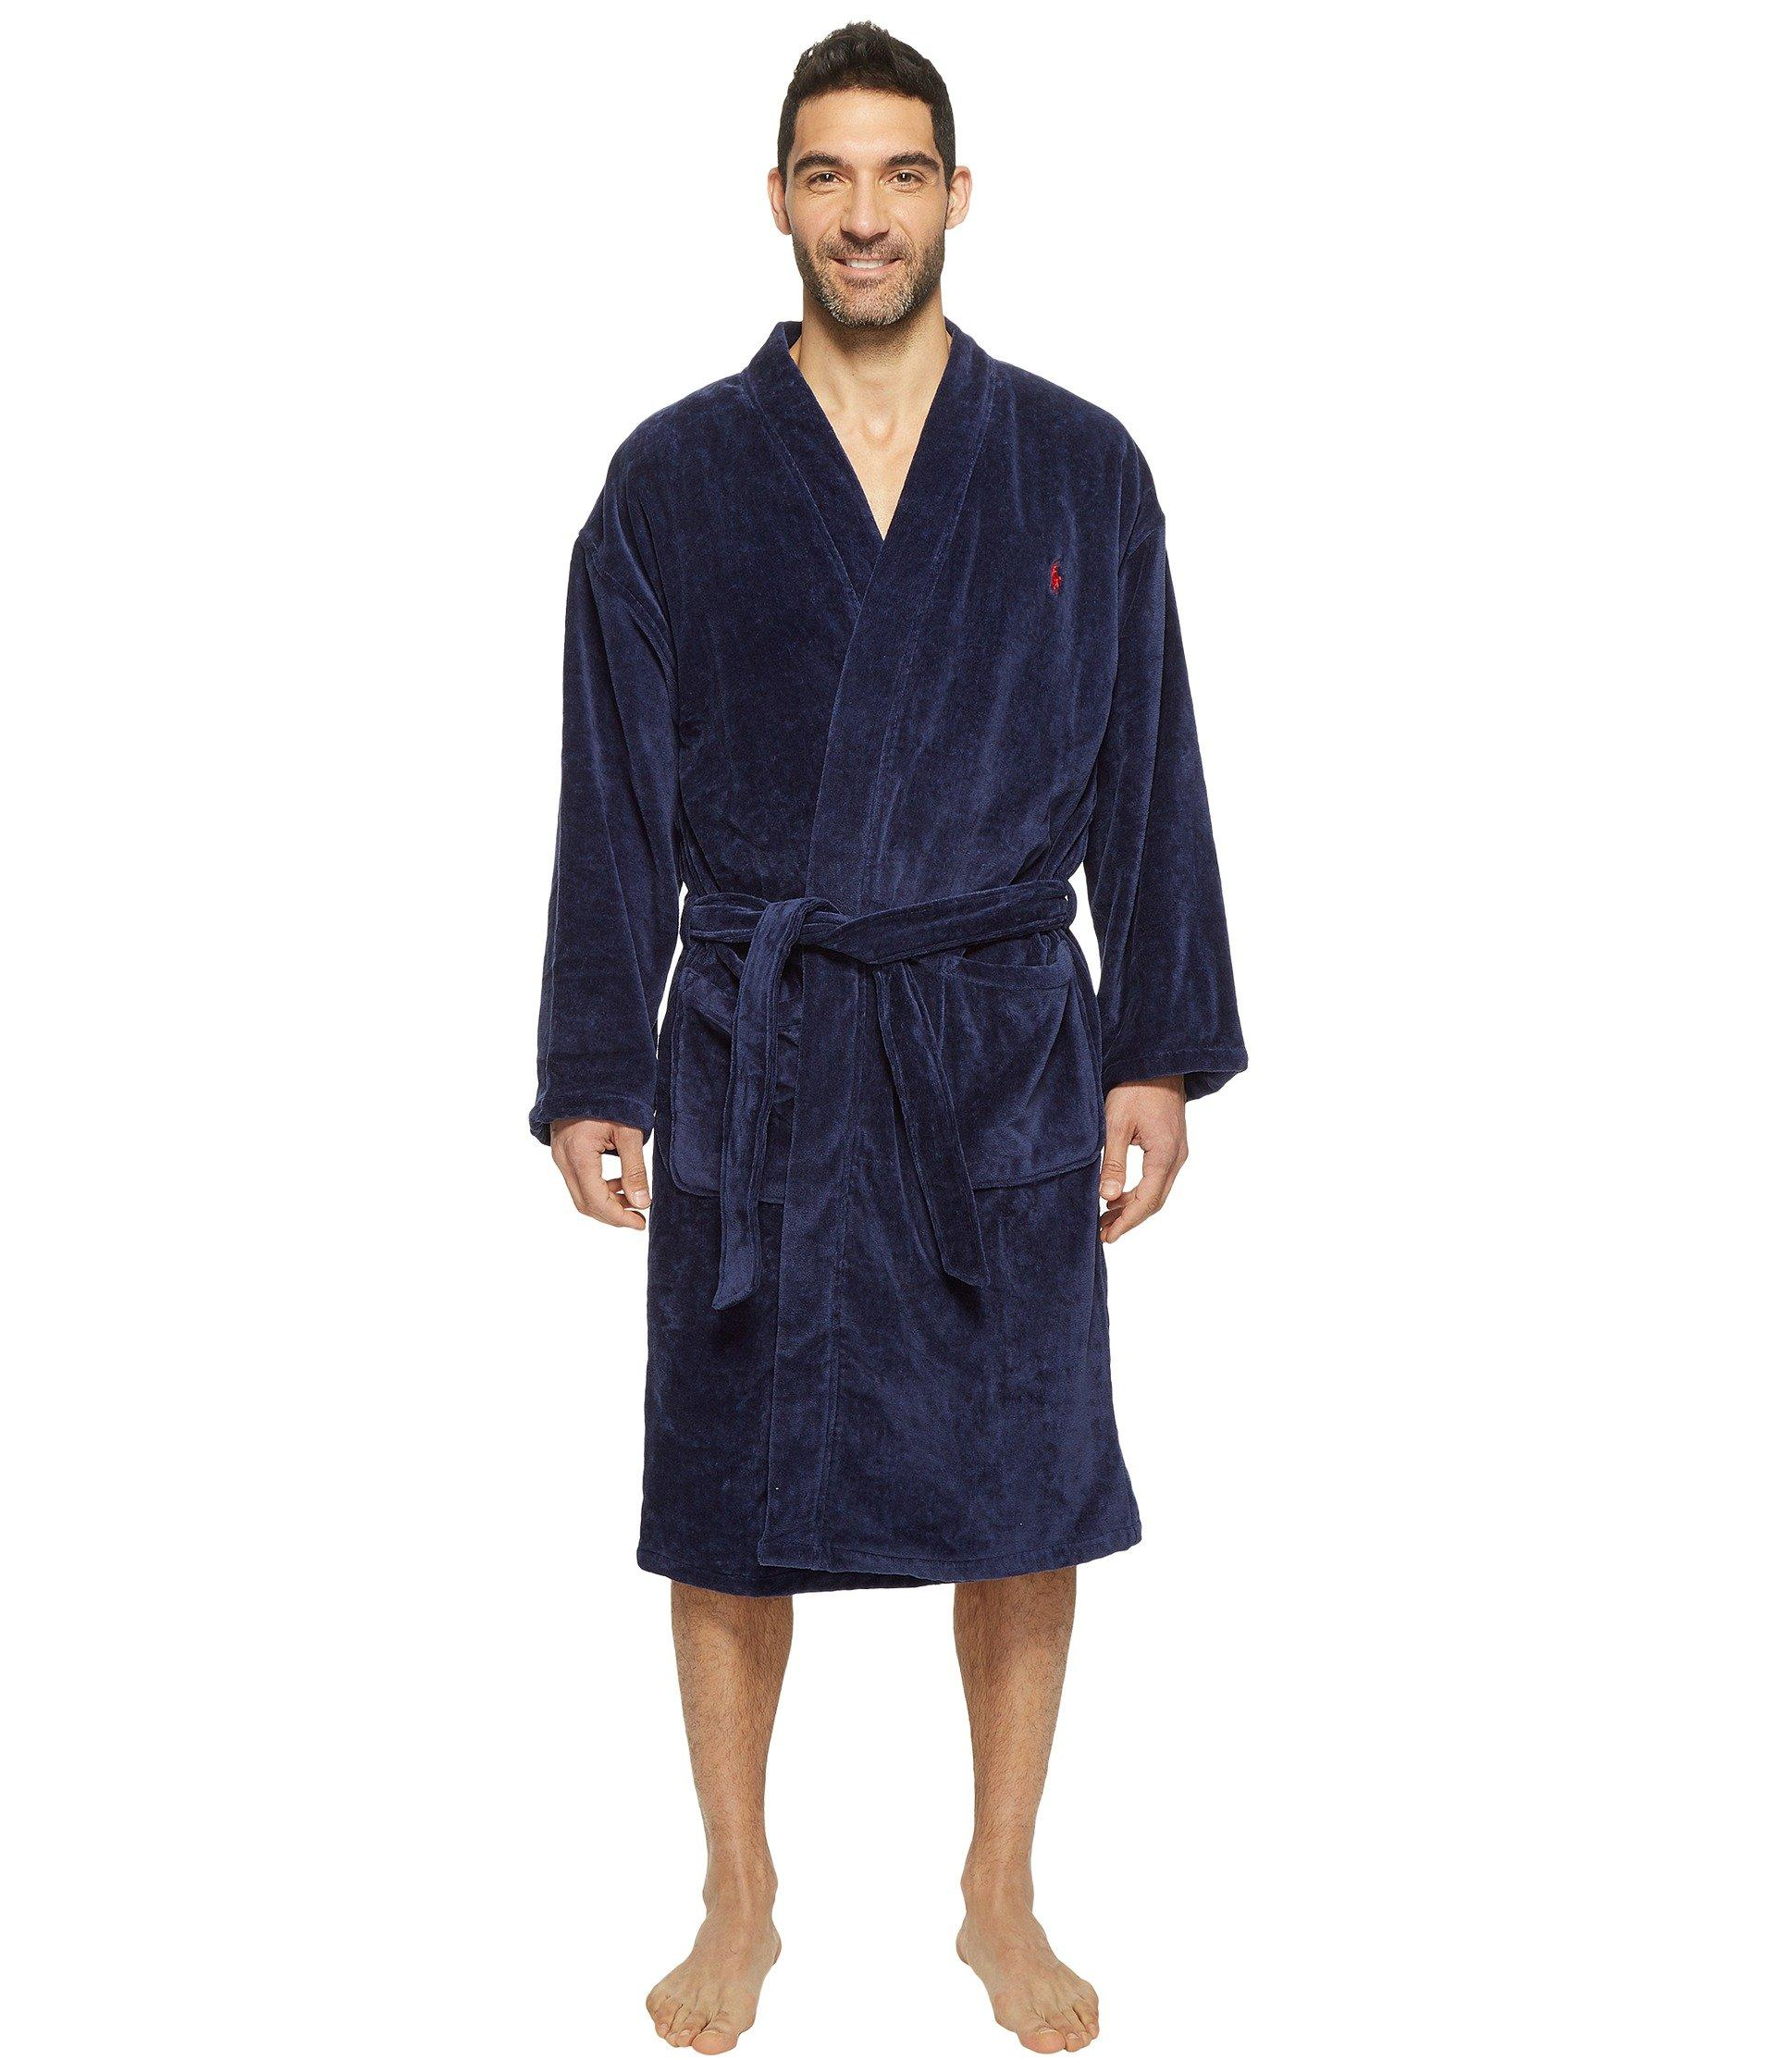 Lyst - Polo Ralph Lauren Terry Shawl Robe (white) Men s Robe in Blue ... 19cc4dece